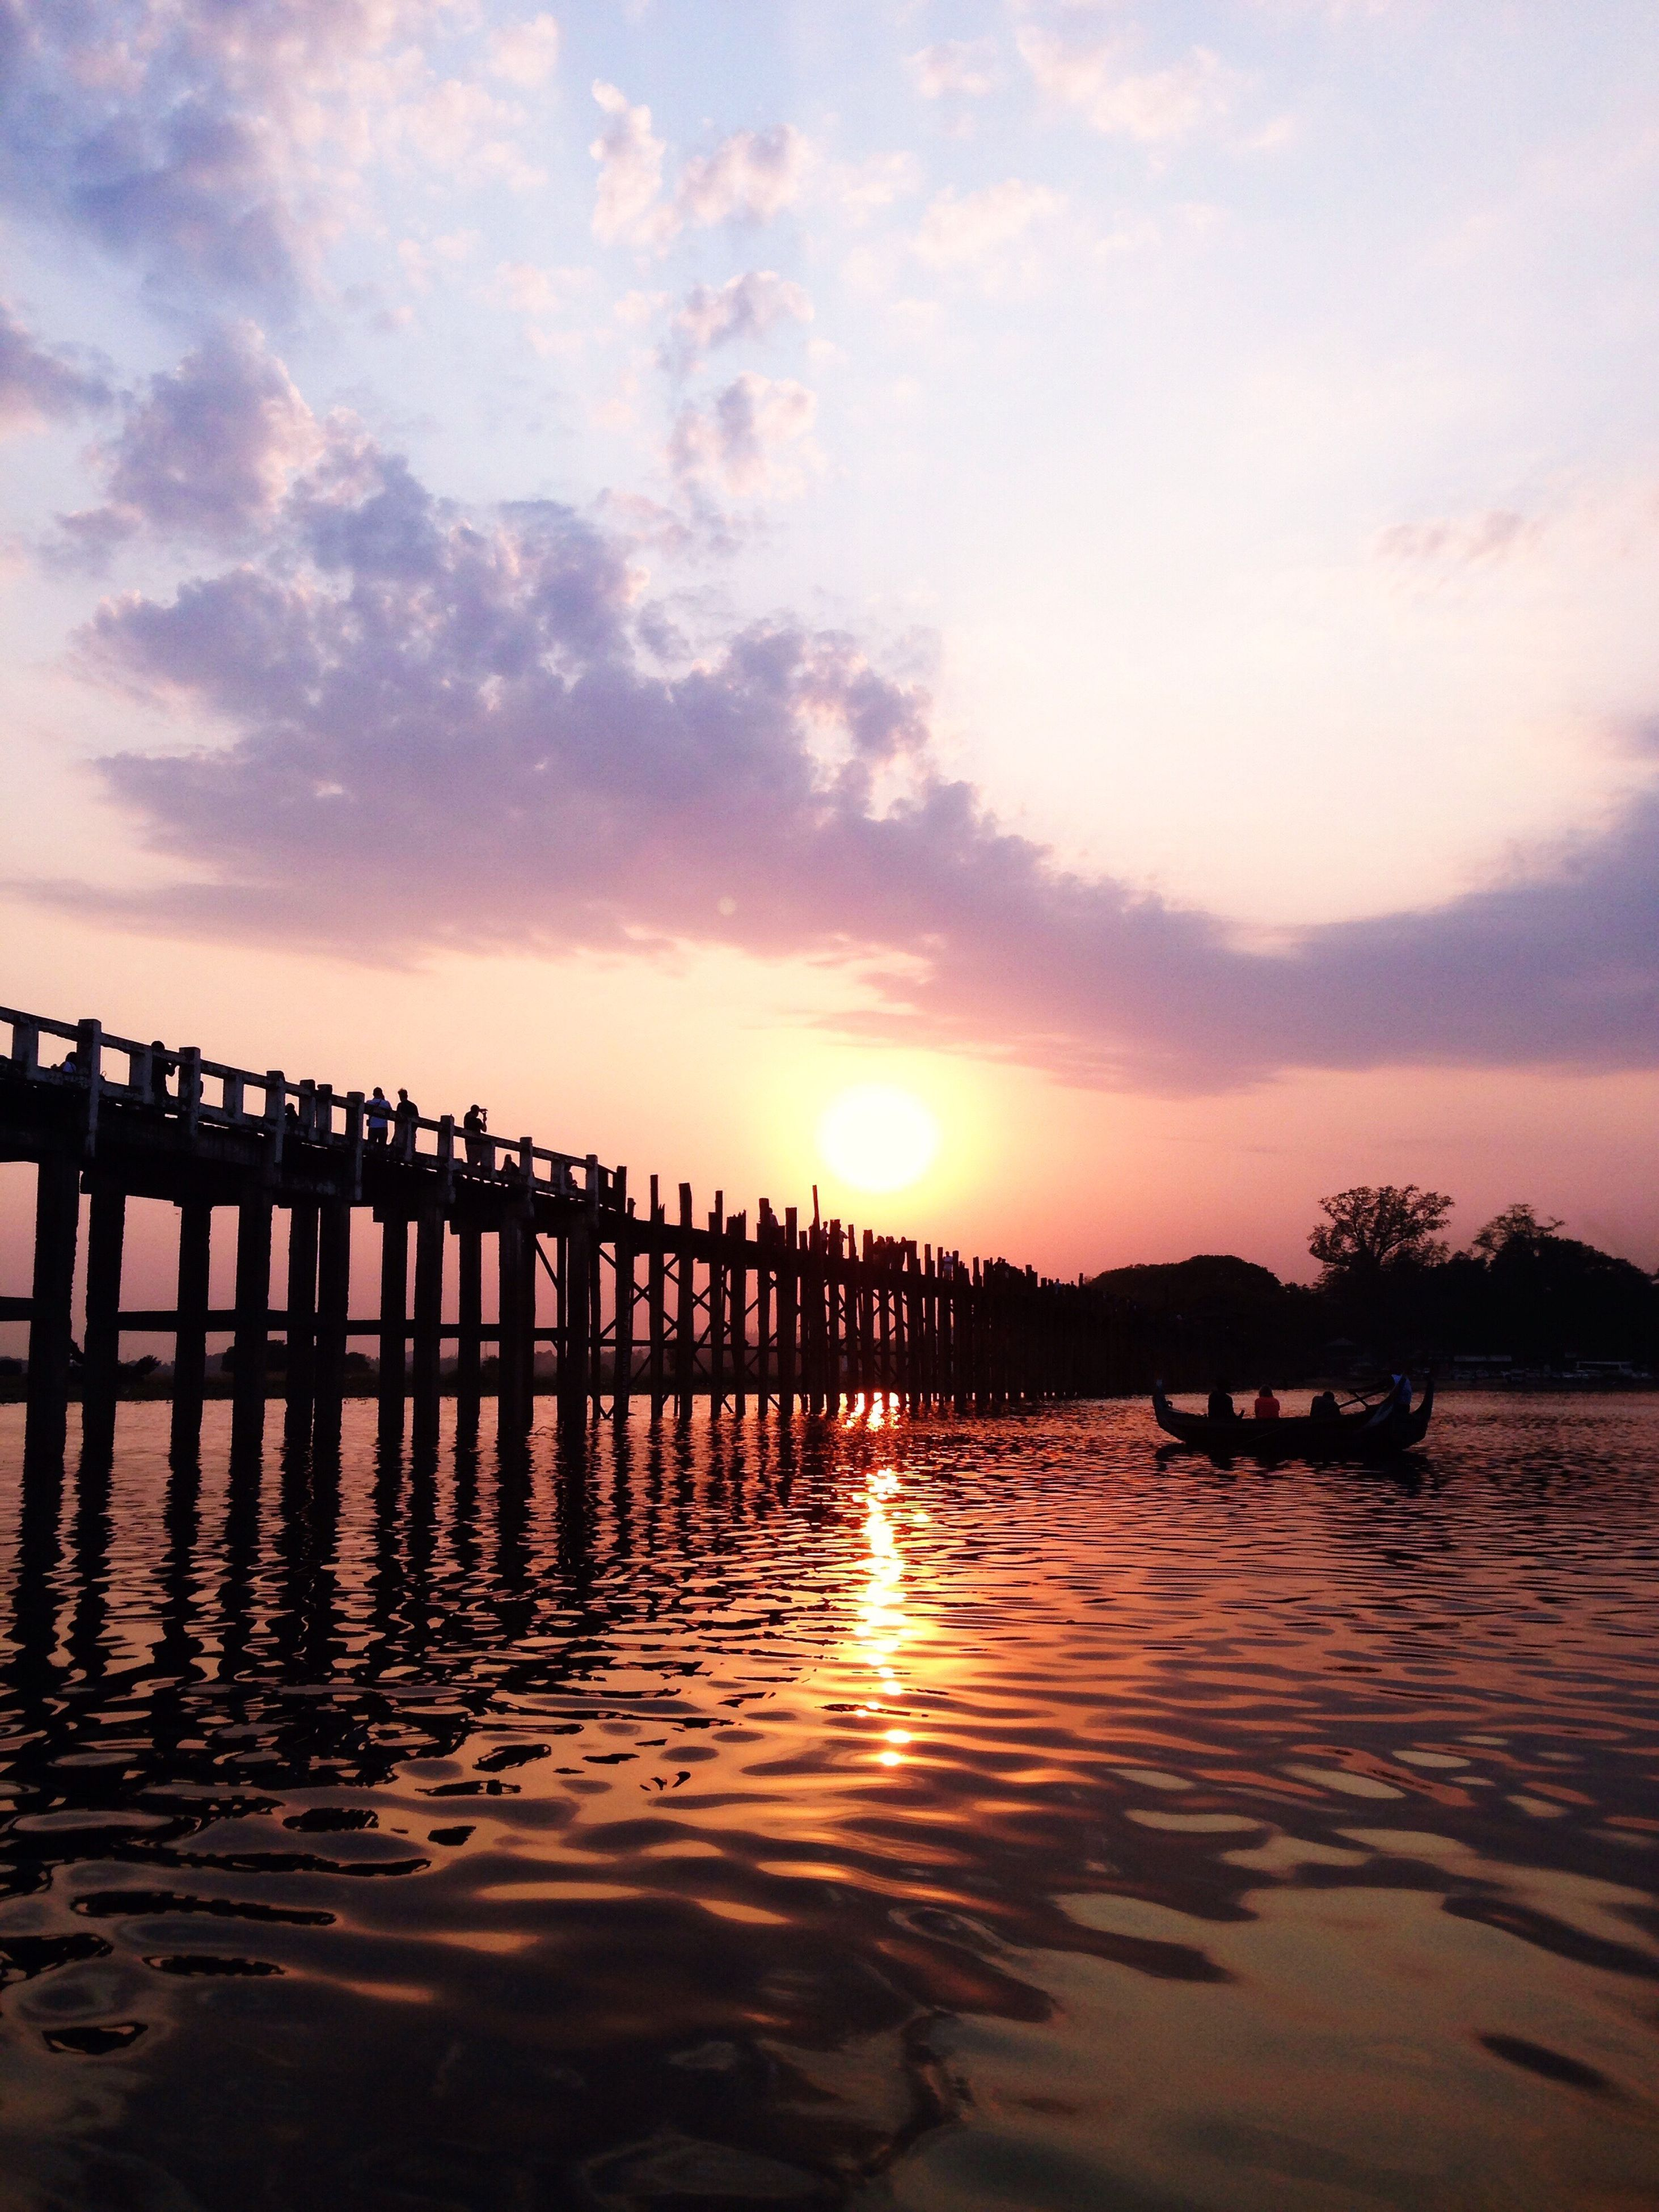 water, sunset, reflection, sky, tranquil scene, tranquility, pier, scenics, beauty in nature, sun, nature, cloud - sky, idyllic, outdoors, cloud, orange color, no people, non-urban scene, wooden post, rippled, calm, cloudy, remote, sunbeam